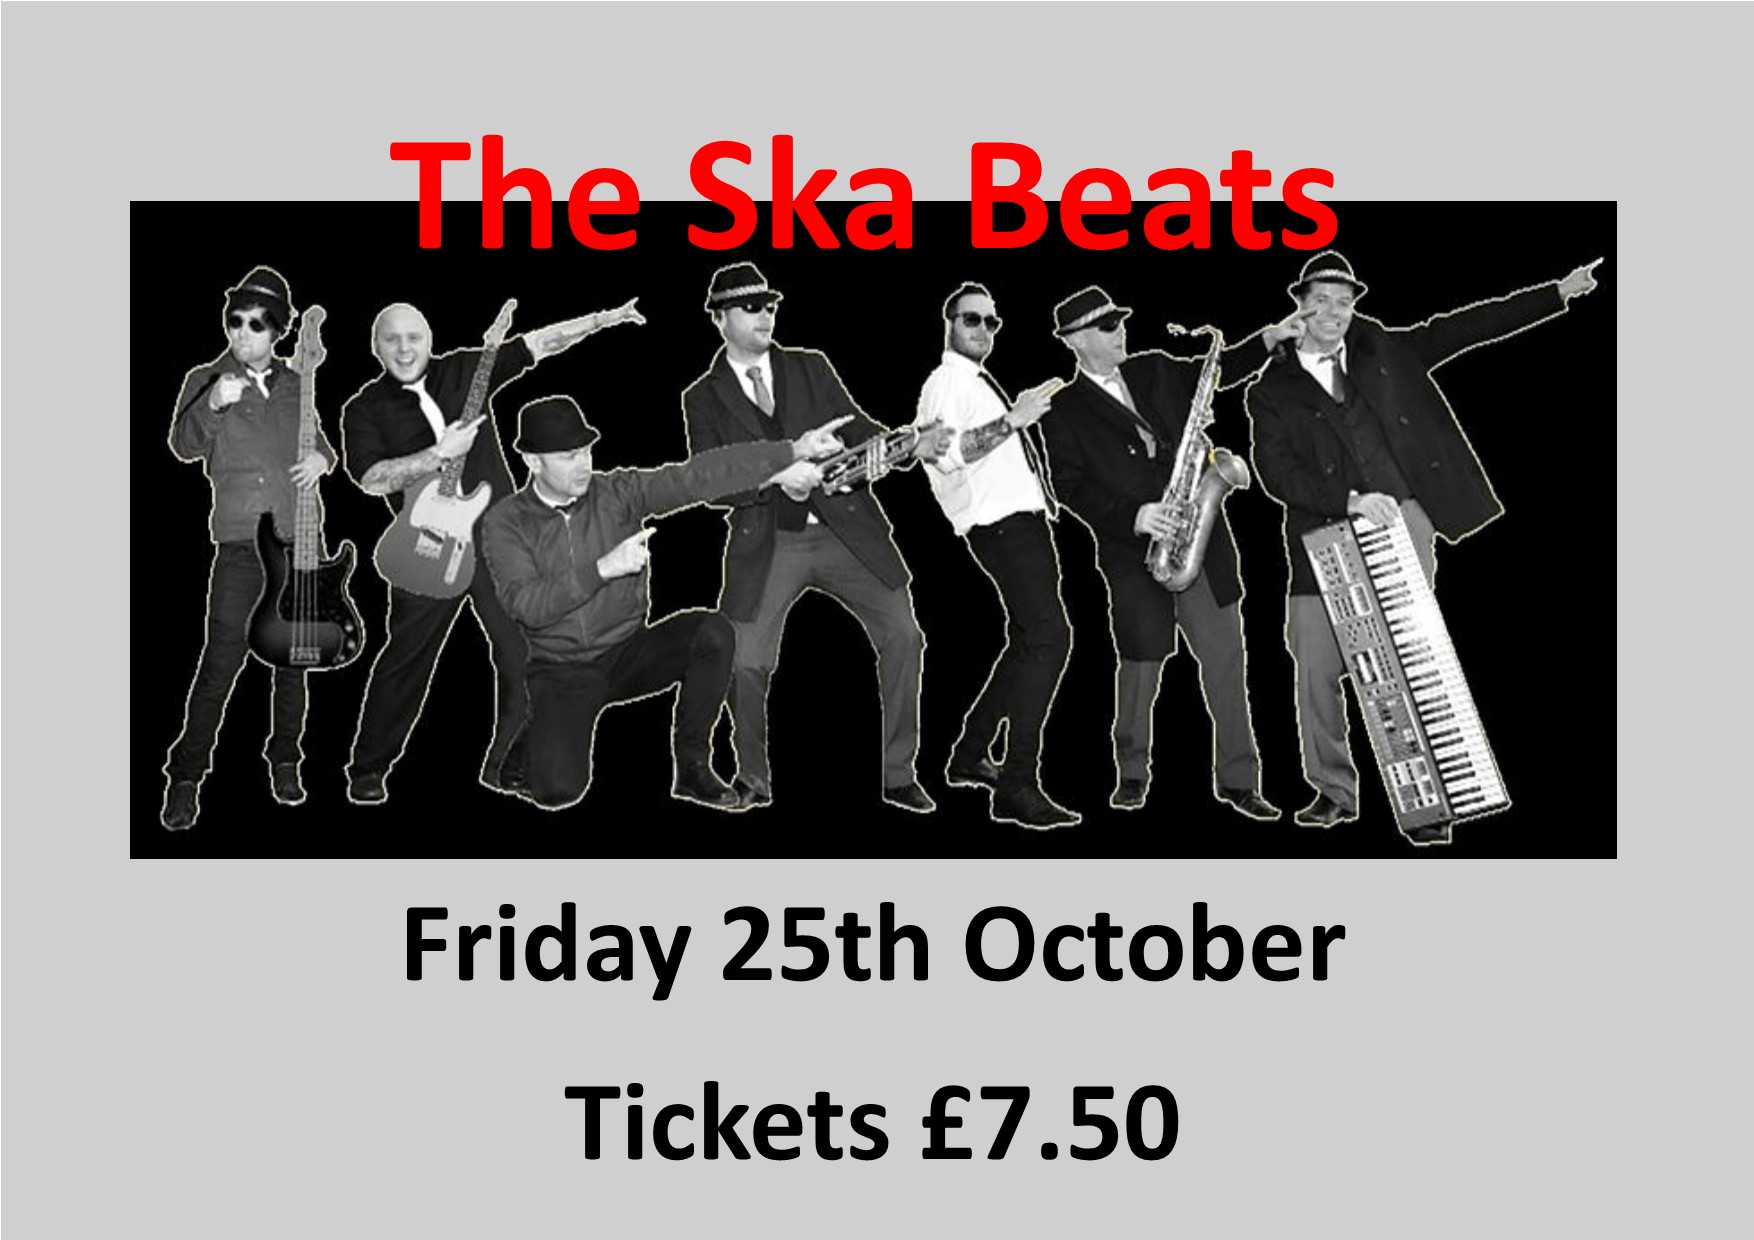 The Ska Beats